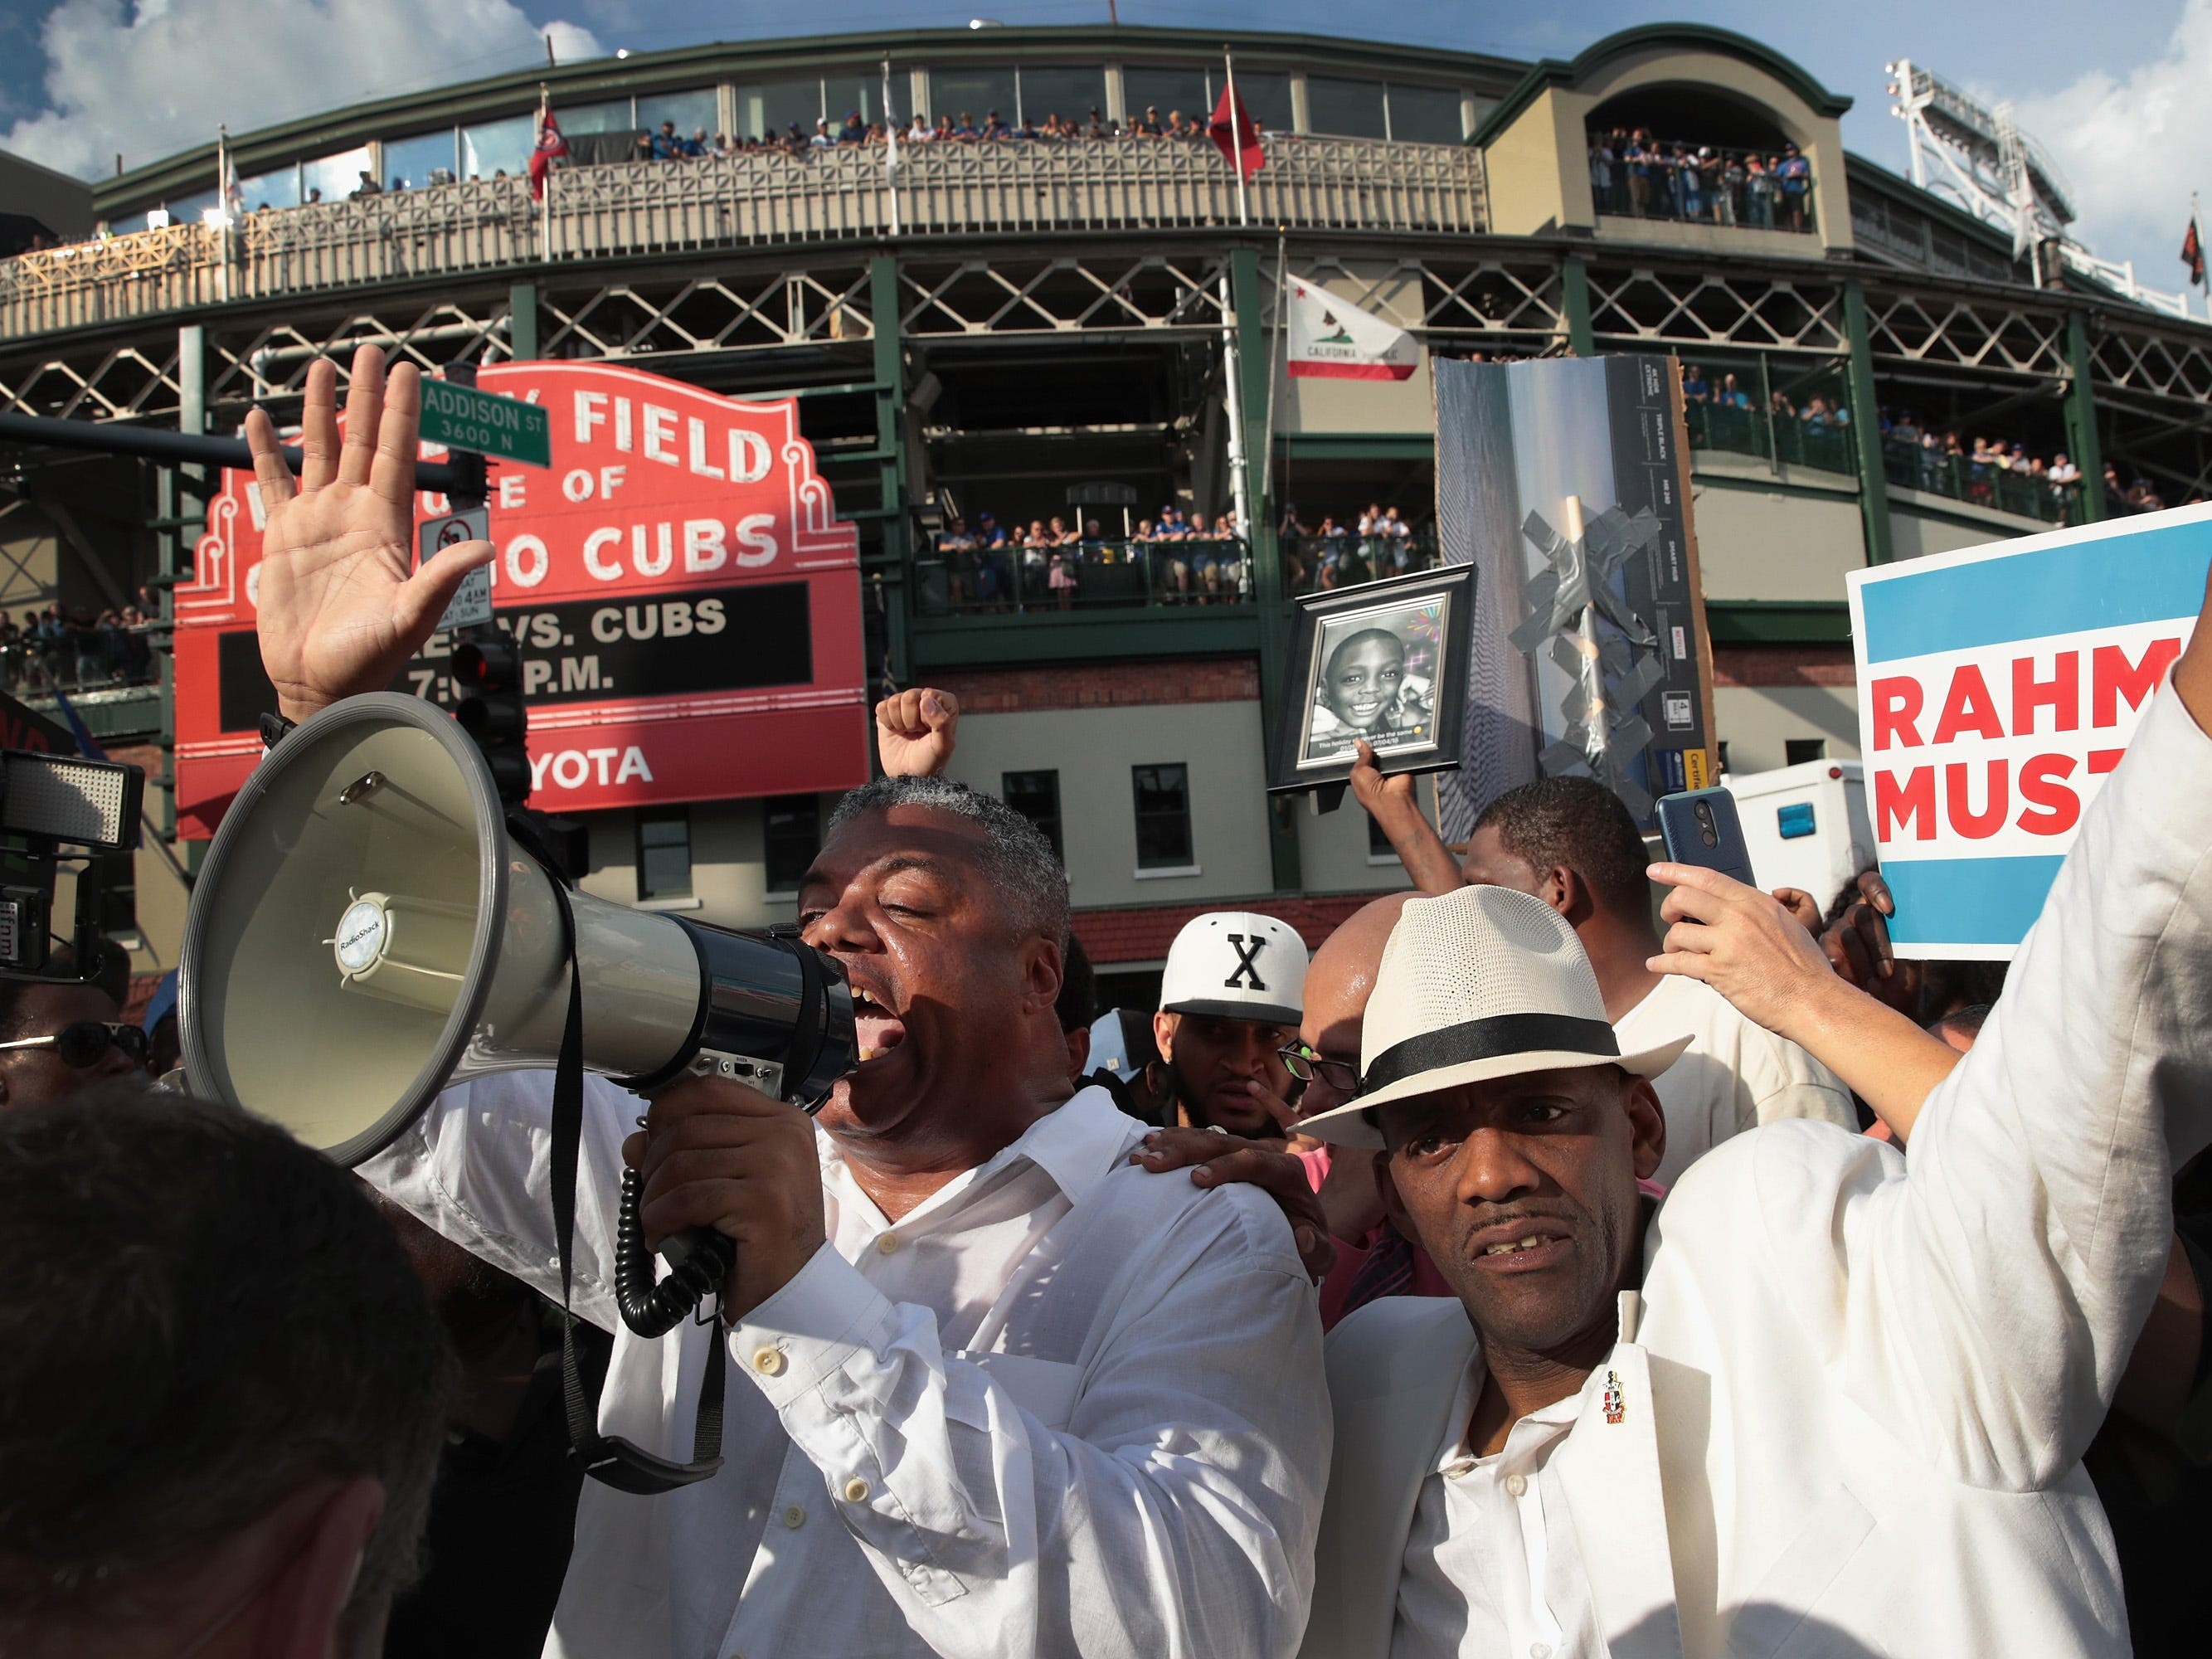 Demonstrators protest in front of Wrigley Field before  the start of the matchup between the Cubs and the Padres on Aug. 2, 2018 in Chicago, IL. The demonstrators, who marched from Lake Shore Drive and through the nearby neighborhoods were protesting the ongoing violence, corruption and the lack of economic investments in African-American communities on the city's west and south sides.